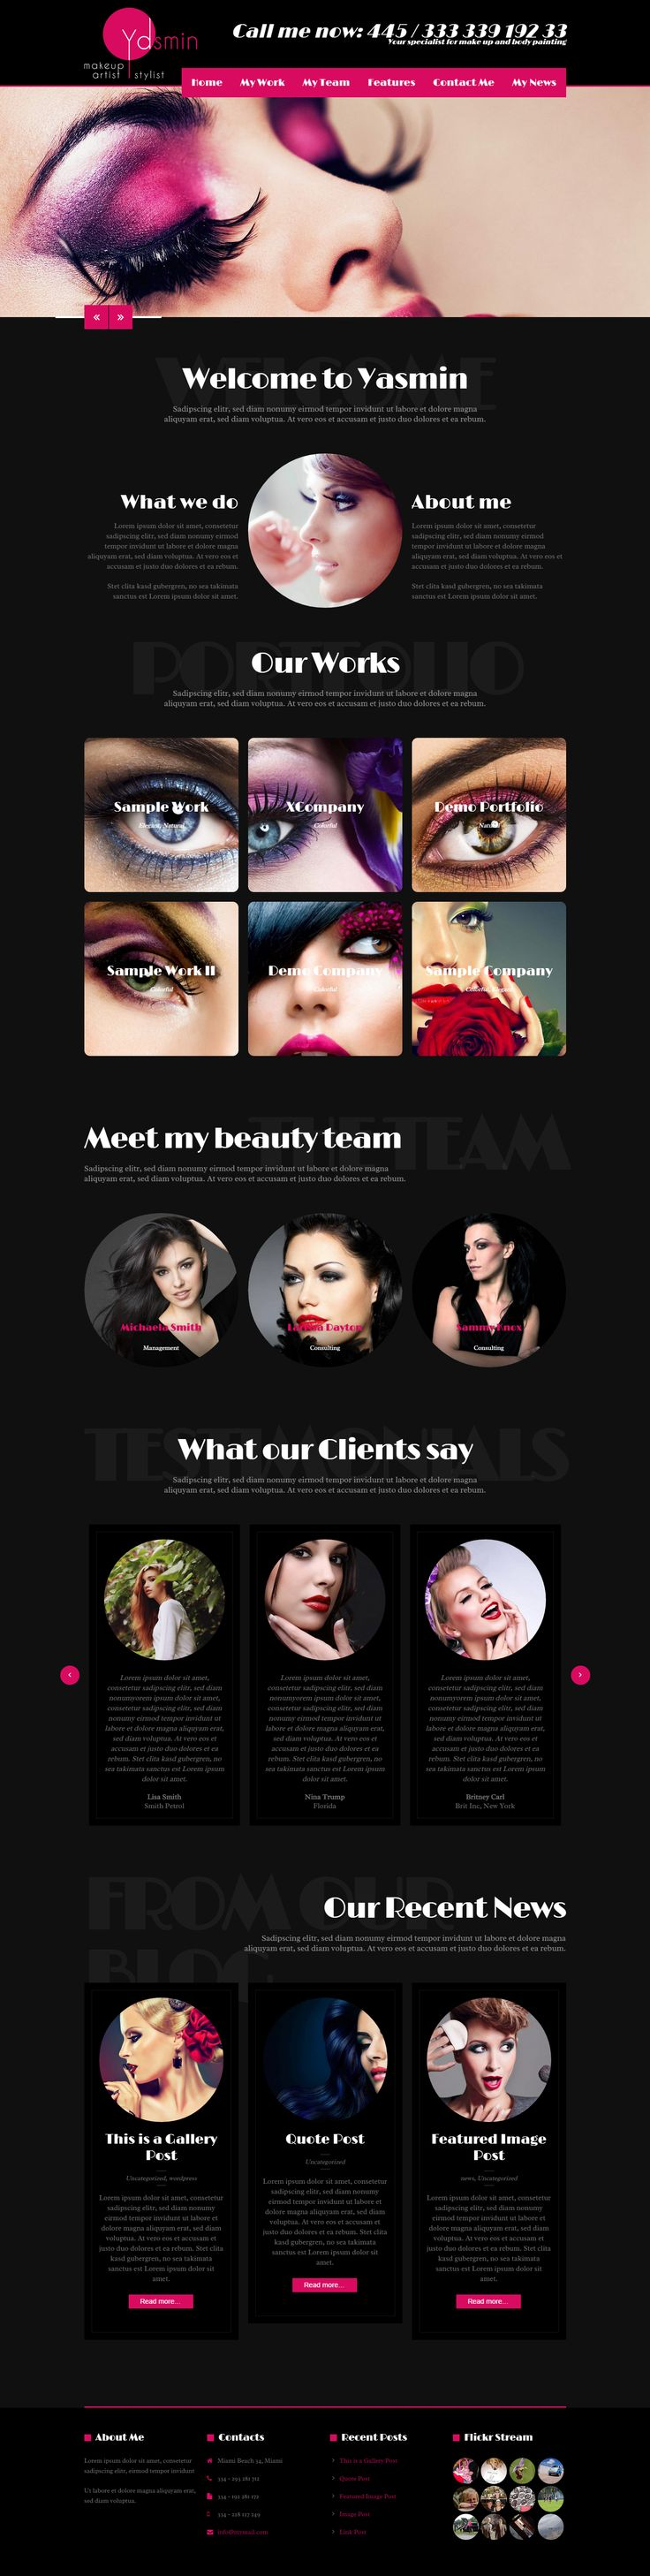 "Yasmin - beauty salon & makeup artist  WordPress theme. Yasmin has a dark designed layout with red highlights. So it ""glows"" to showcase your pretty work in a perfect way. The layout is made for hairdresser, haircutter, cosmeticians, beauticians, makeup artists, nail designer and all other beauty related businesses.   #WP #WordPress #Webdesign #Makeup artist #beauty #hairdresser #cosmetician #beautician #barber"